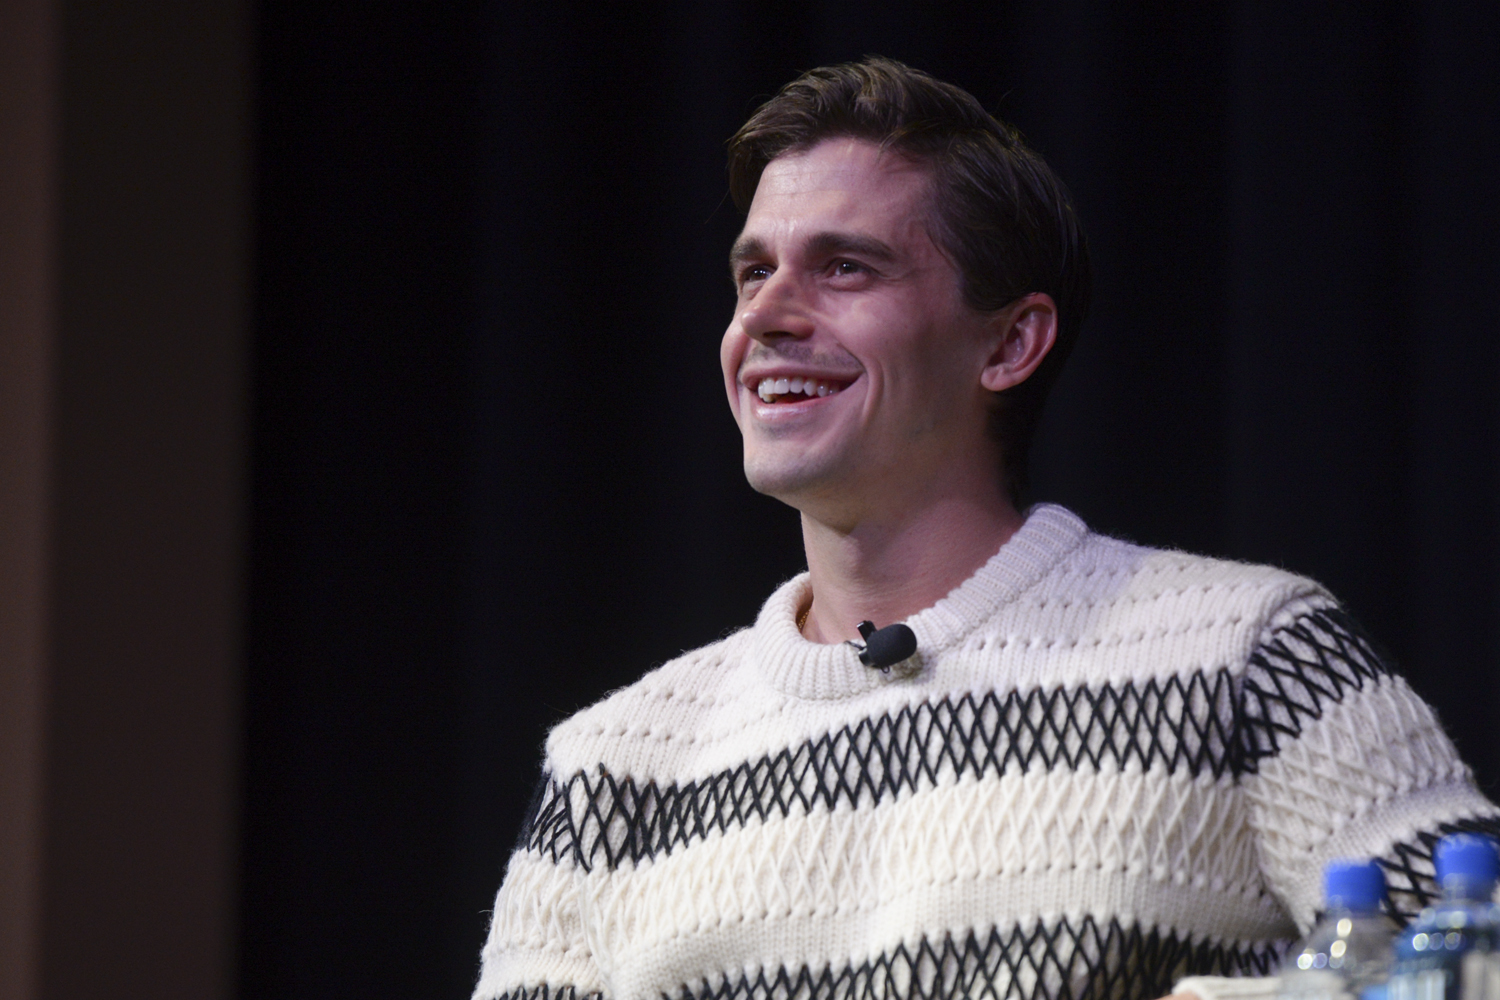 """Queer Eye"" food and wine expert Antoni Porowski visited Pitt on Nov. 28, 2018, for a Q&A and cooking demonstration."